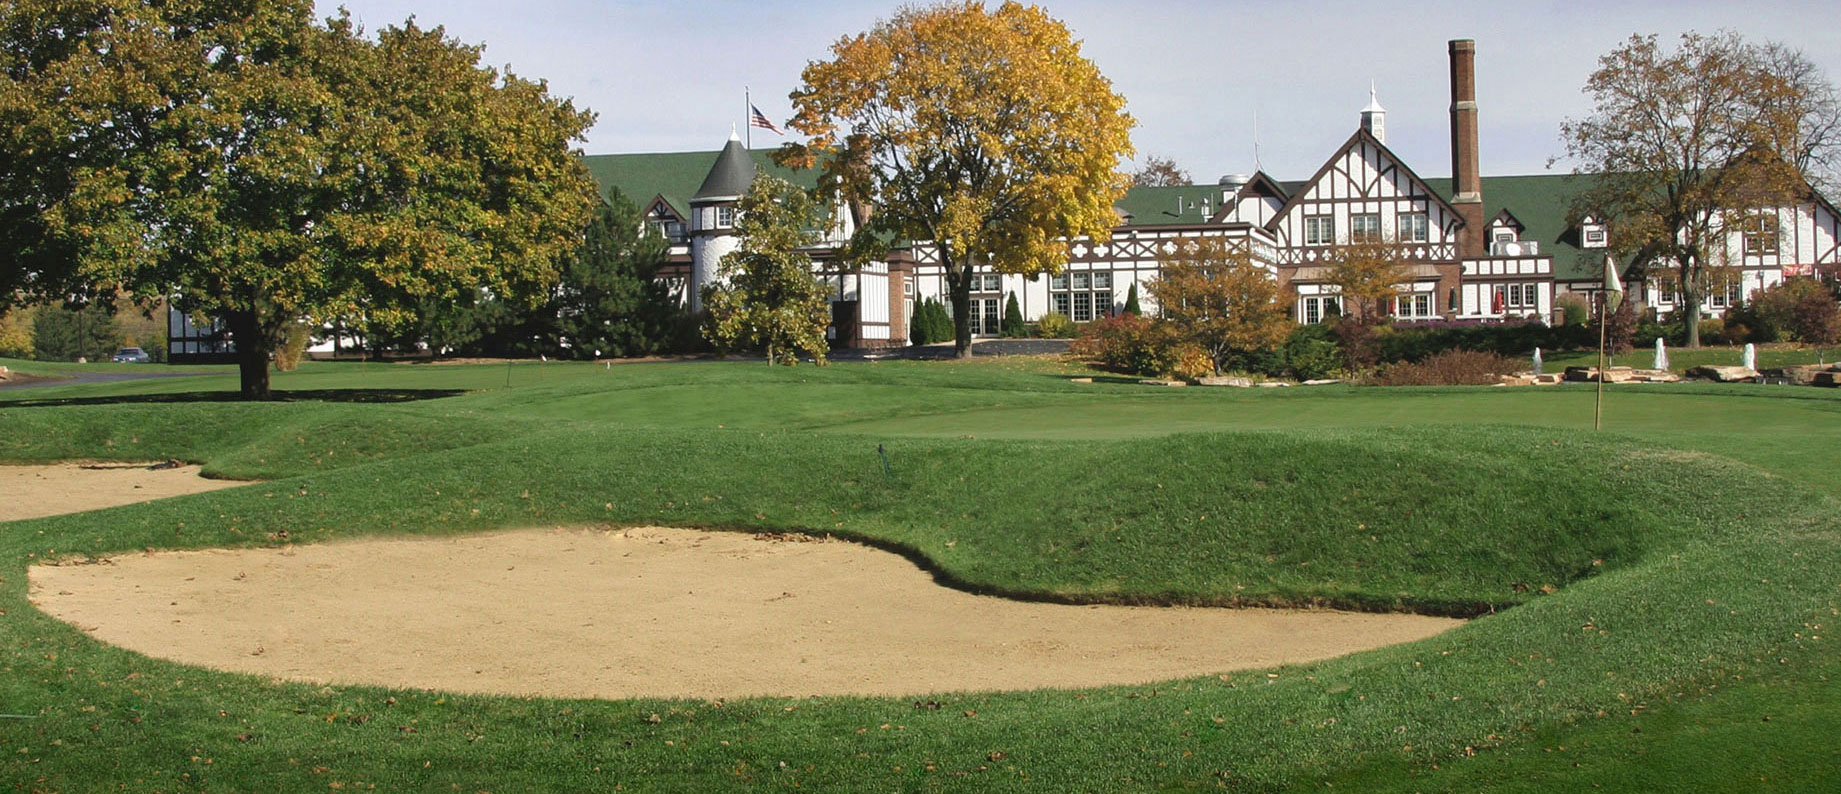 Overview of golf course named Traditions at Chevy Chase